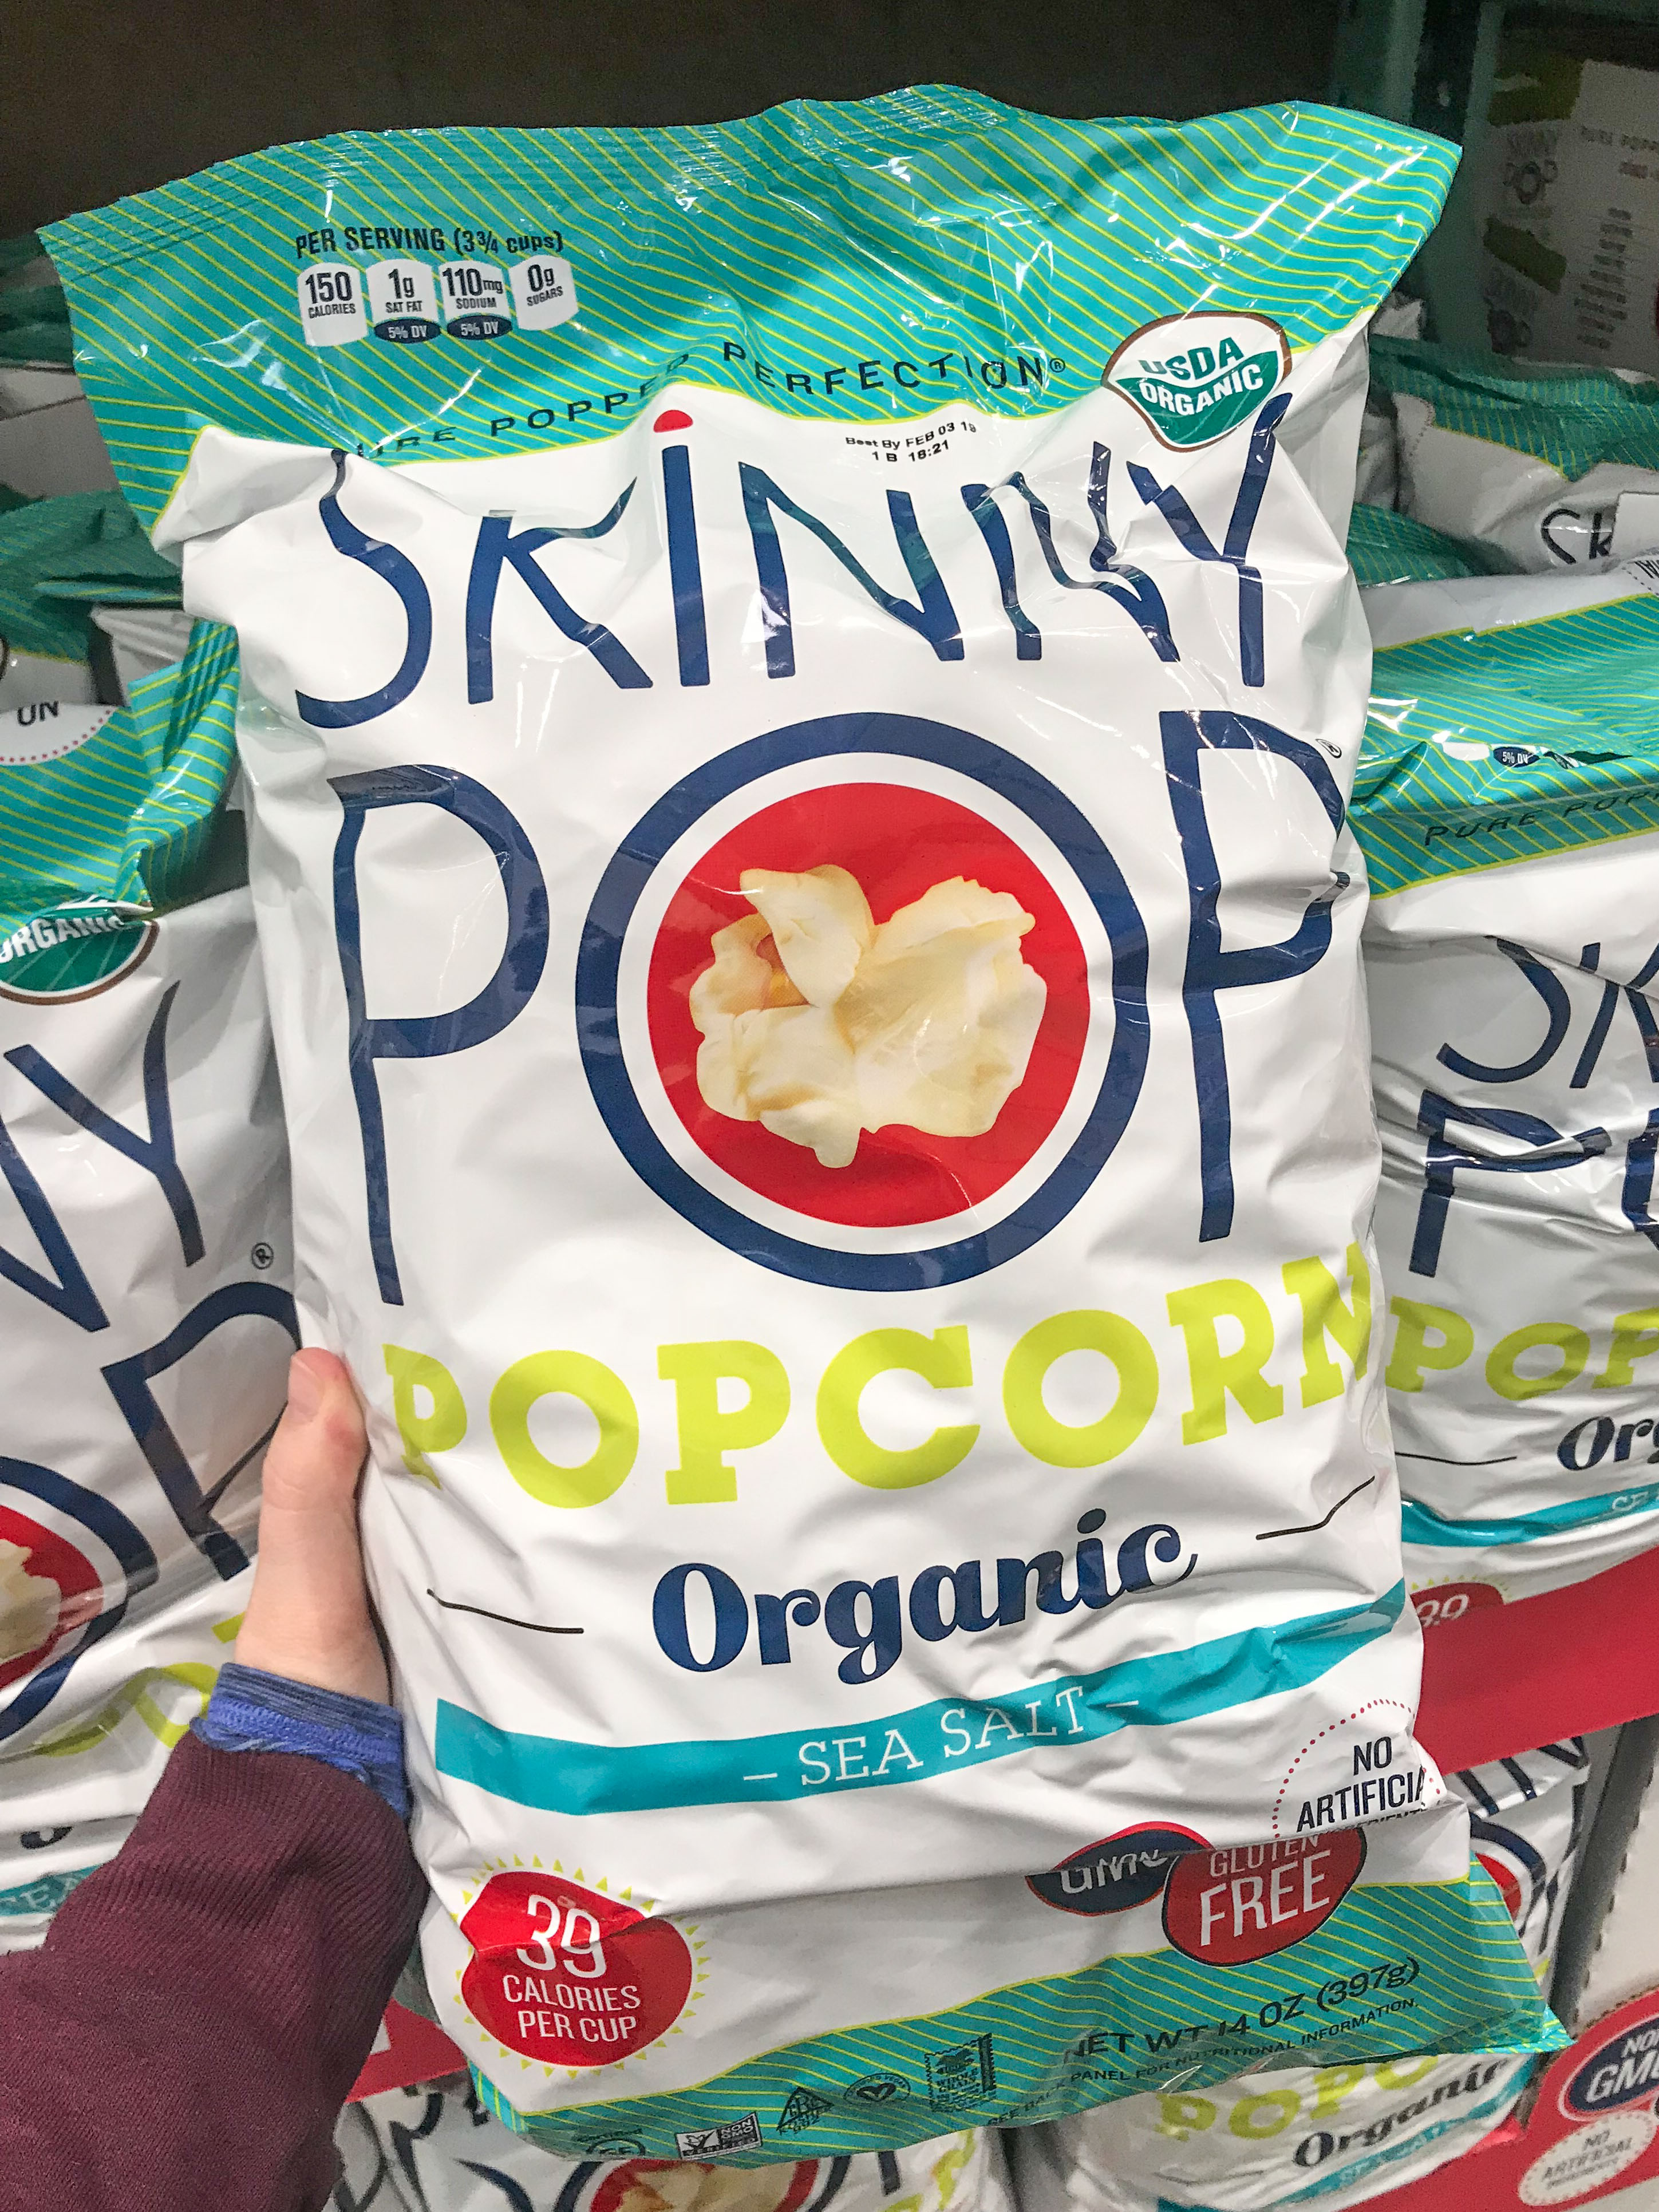 Skinny Pop popcorn is one of the best snacks to buy at costco